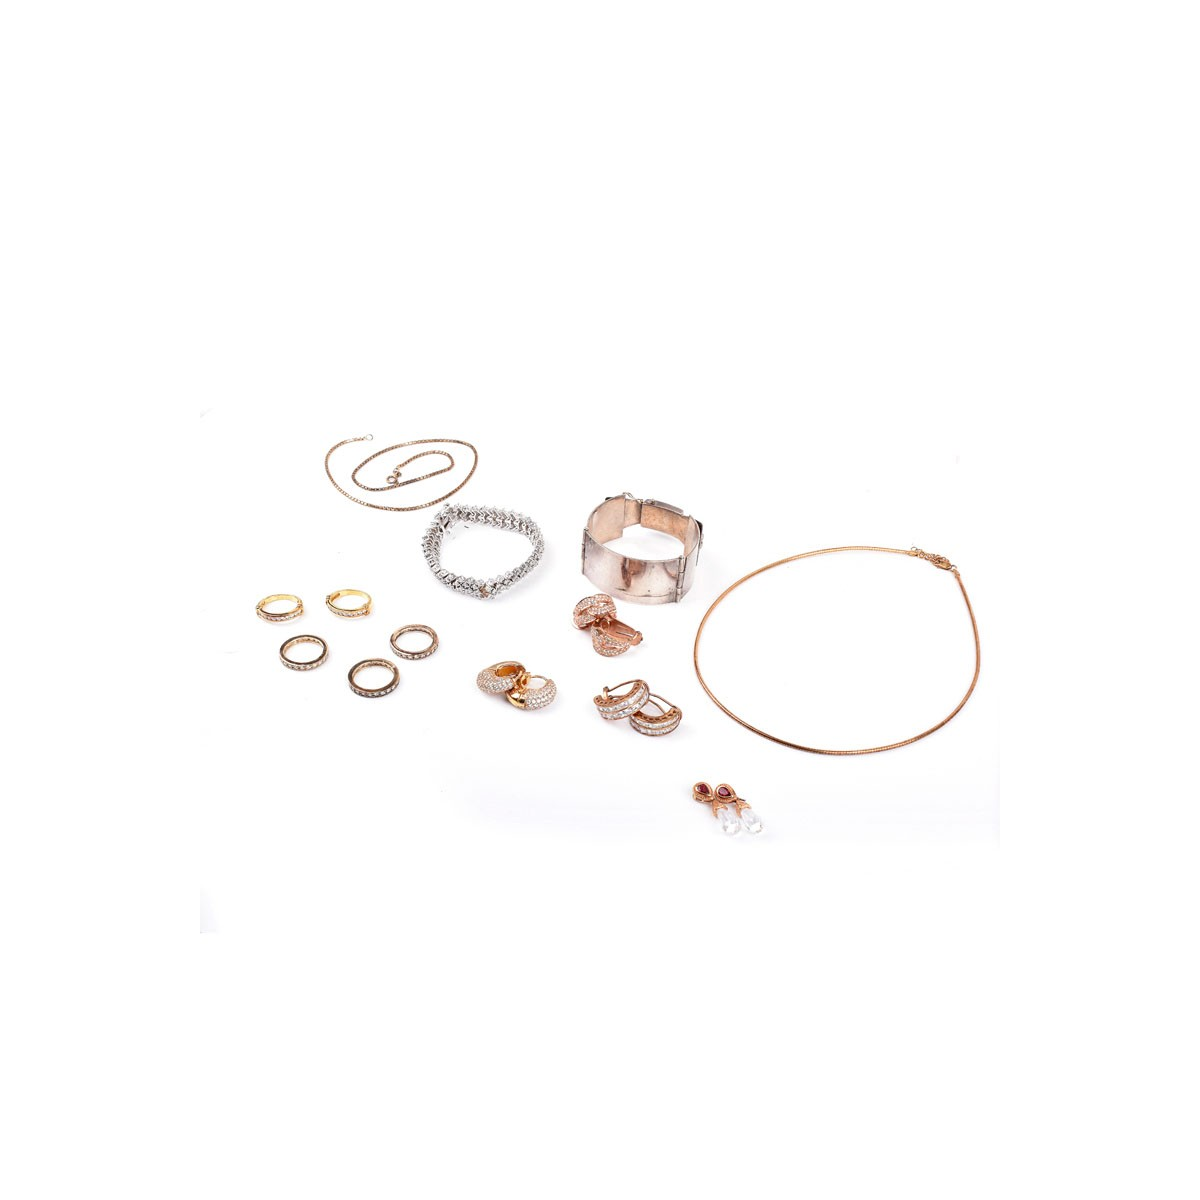 Lot 293 - Collection of Sterling Silver Jewelry Including Fa